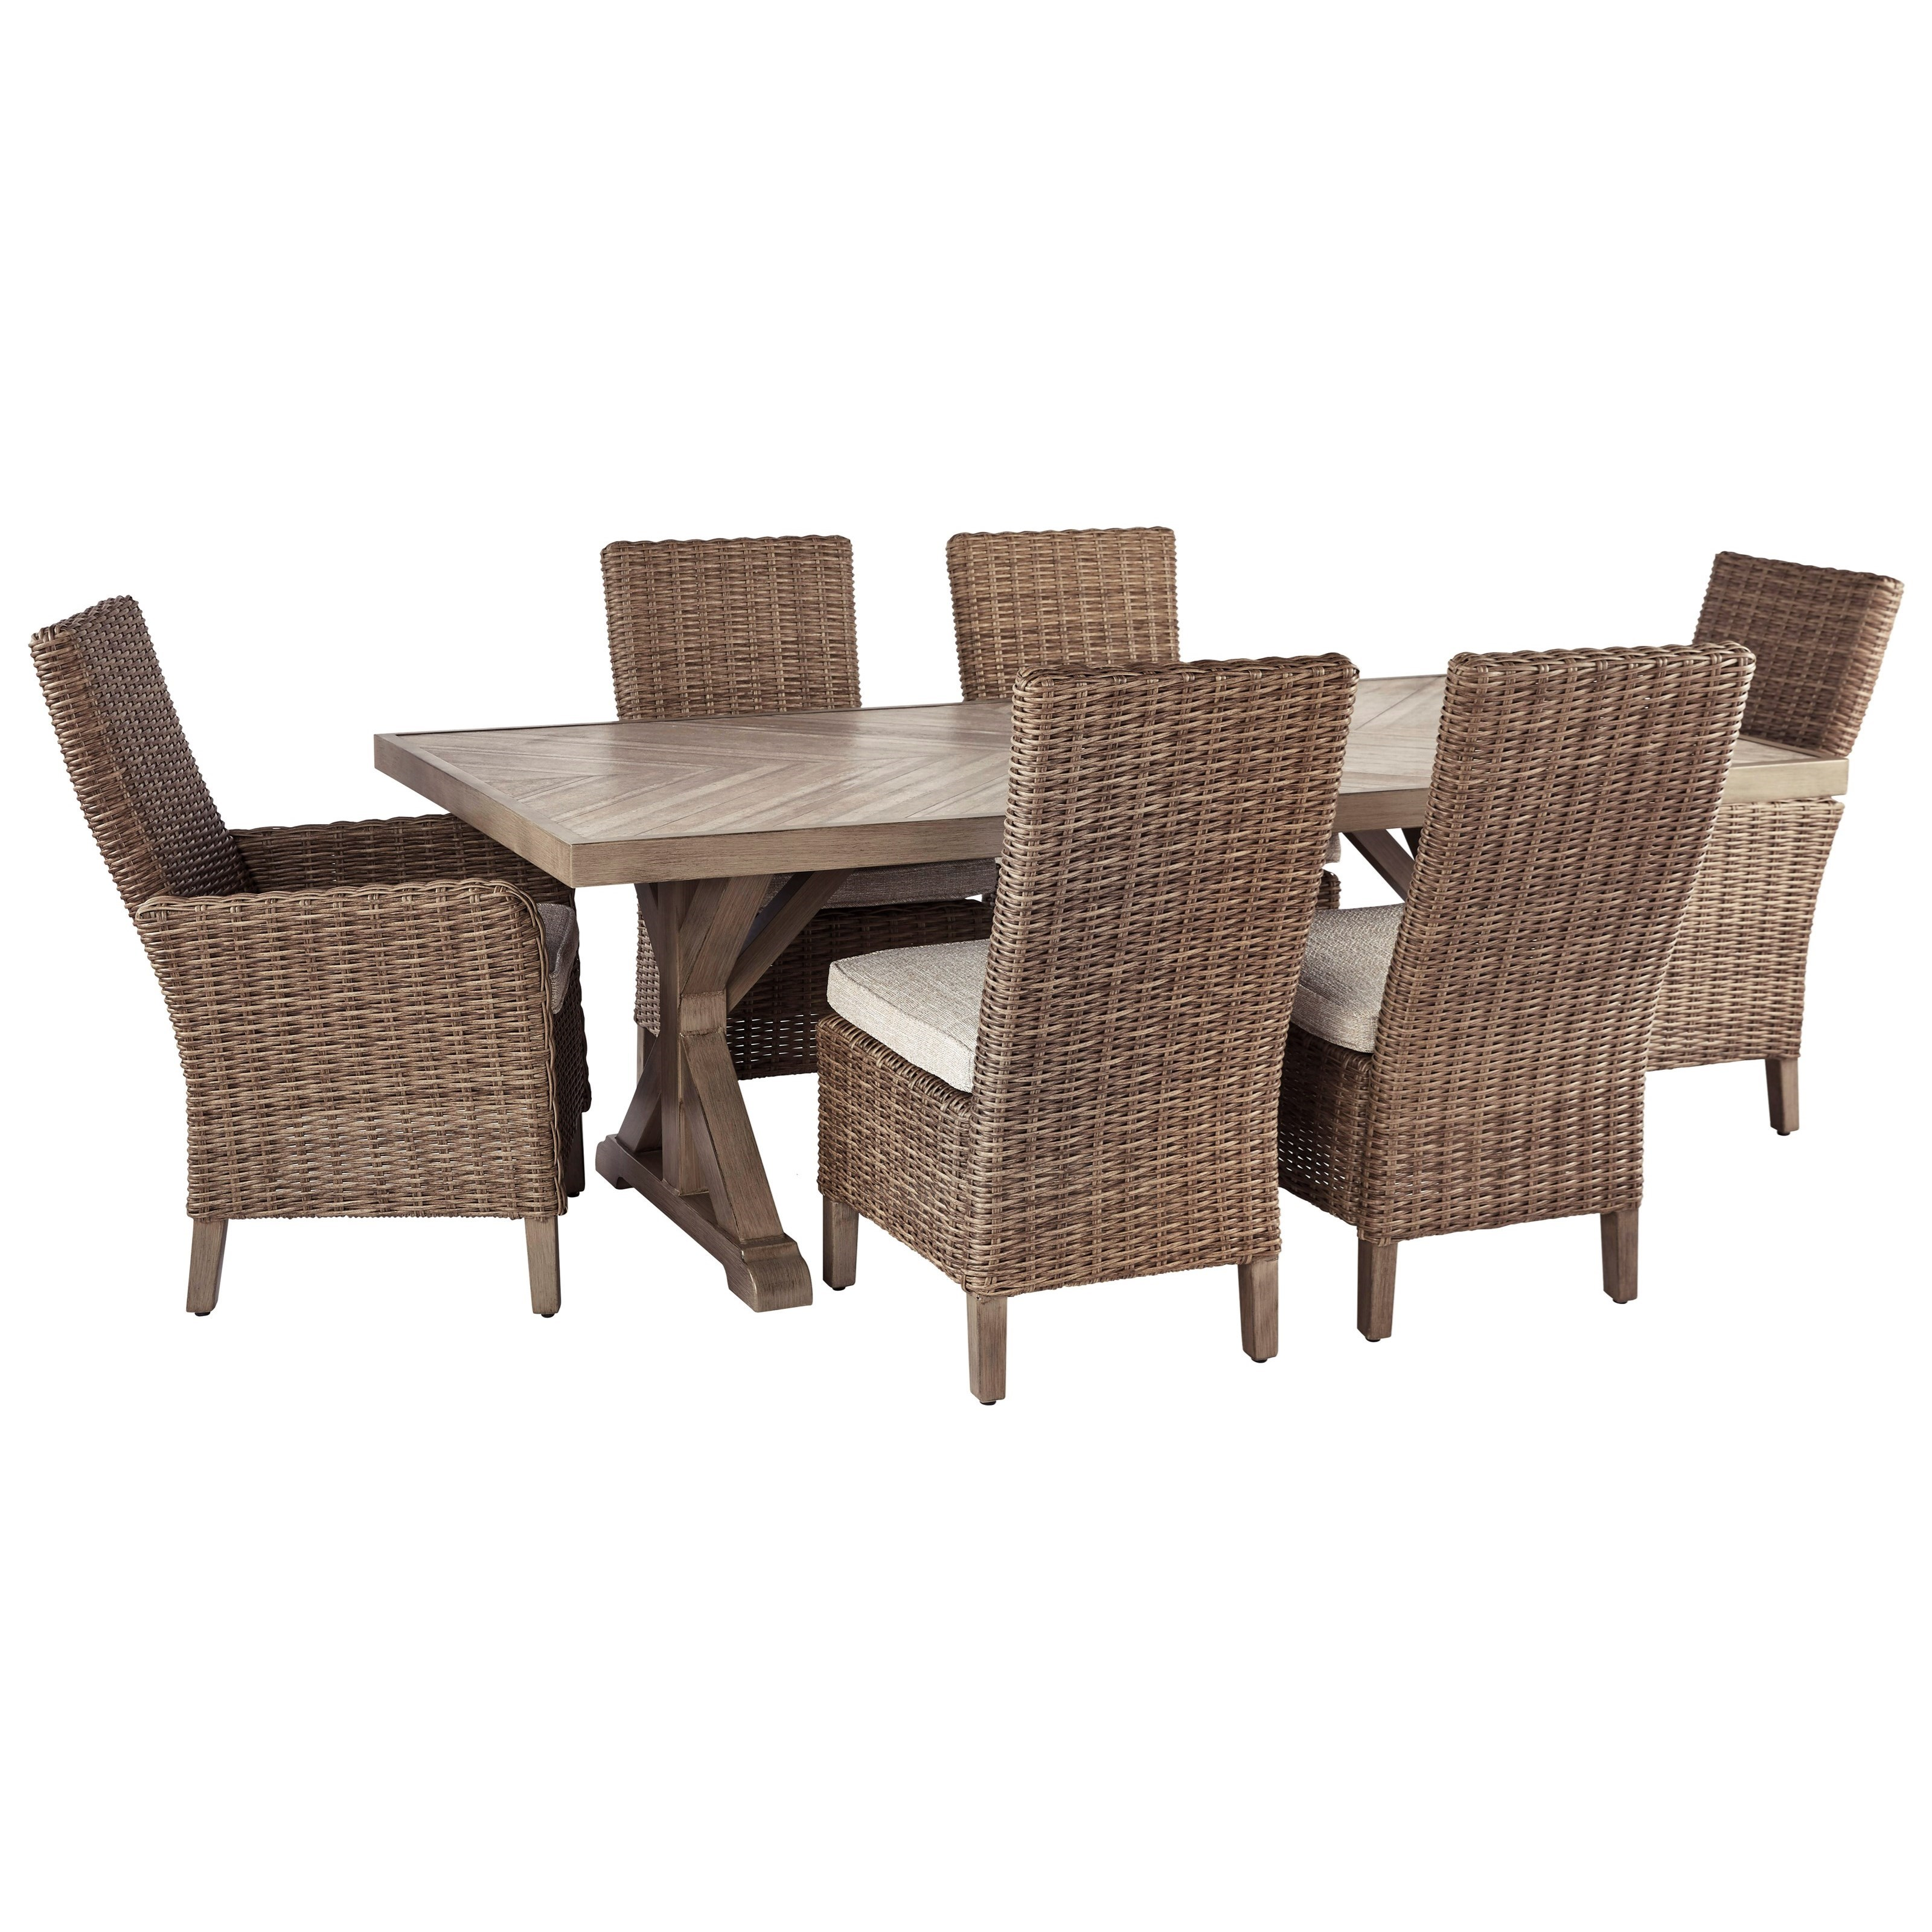 Beachcroft 7 Piece Outdoor Dining Set by Signature Design by Ashley at Sparks HomeStore